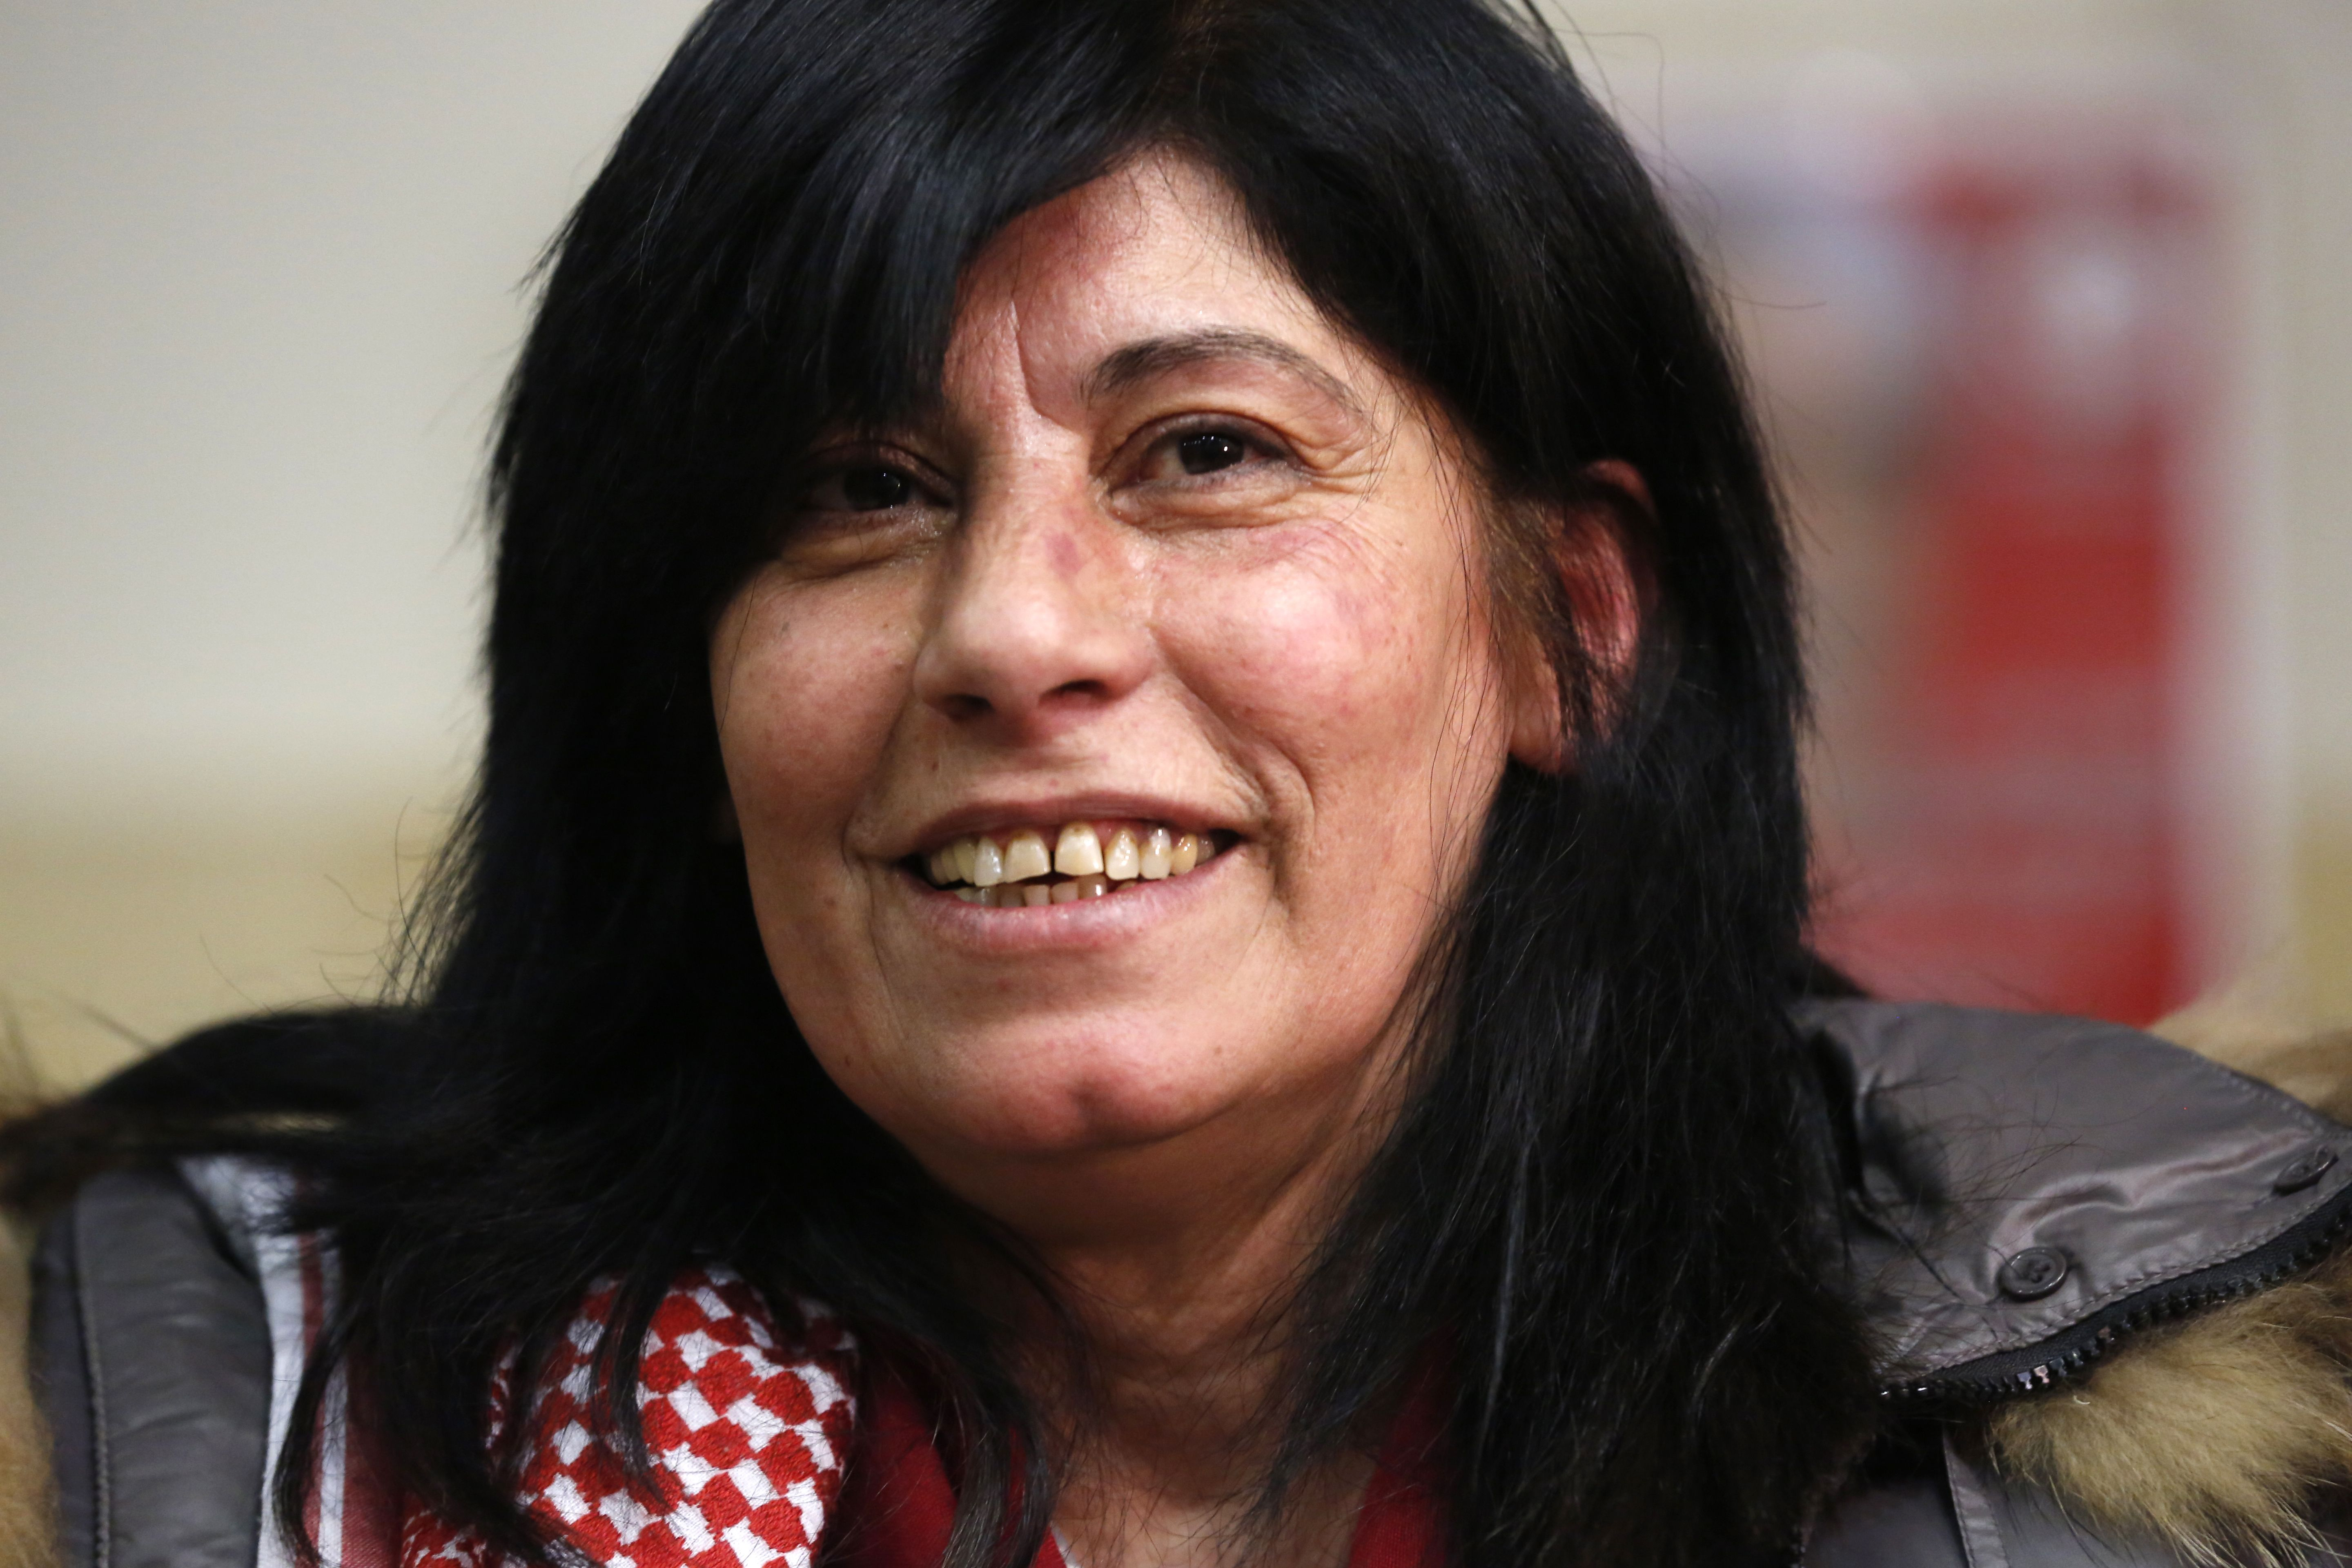 Popular Front for the Liberation of Palestine (PFLP) member Khalida Jarrar, 56, smiles following her release from an Israeli jail, in the occupied West Bank city of Ramallah, on February 28, 2019. (ABBAS MOMANI/AFP/Getty Images)